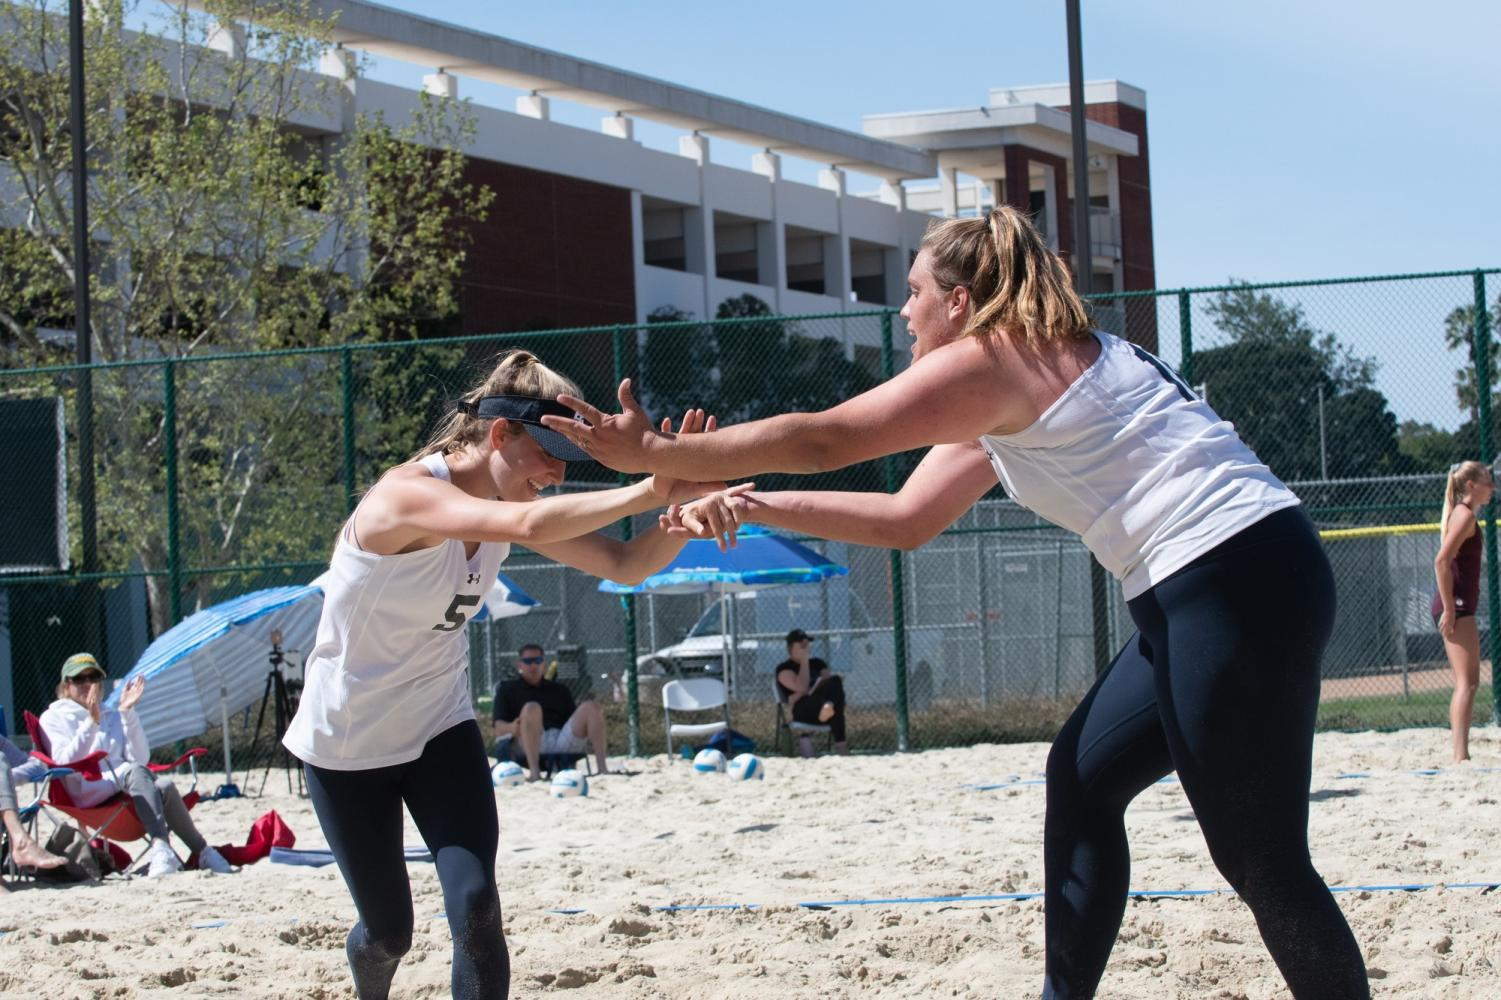 Warriors women's beach volleyball players Caitlin Donatucci (No. 5) and Sophia Loiola (No. 10) high-fiving each other in between sets during their doubleheader versus Mt. San Antonio and Santa Ana on Friday, March 29, at El Camino's sand courts. Photo credit: Elena Perez